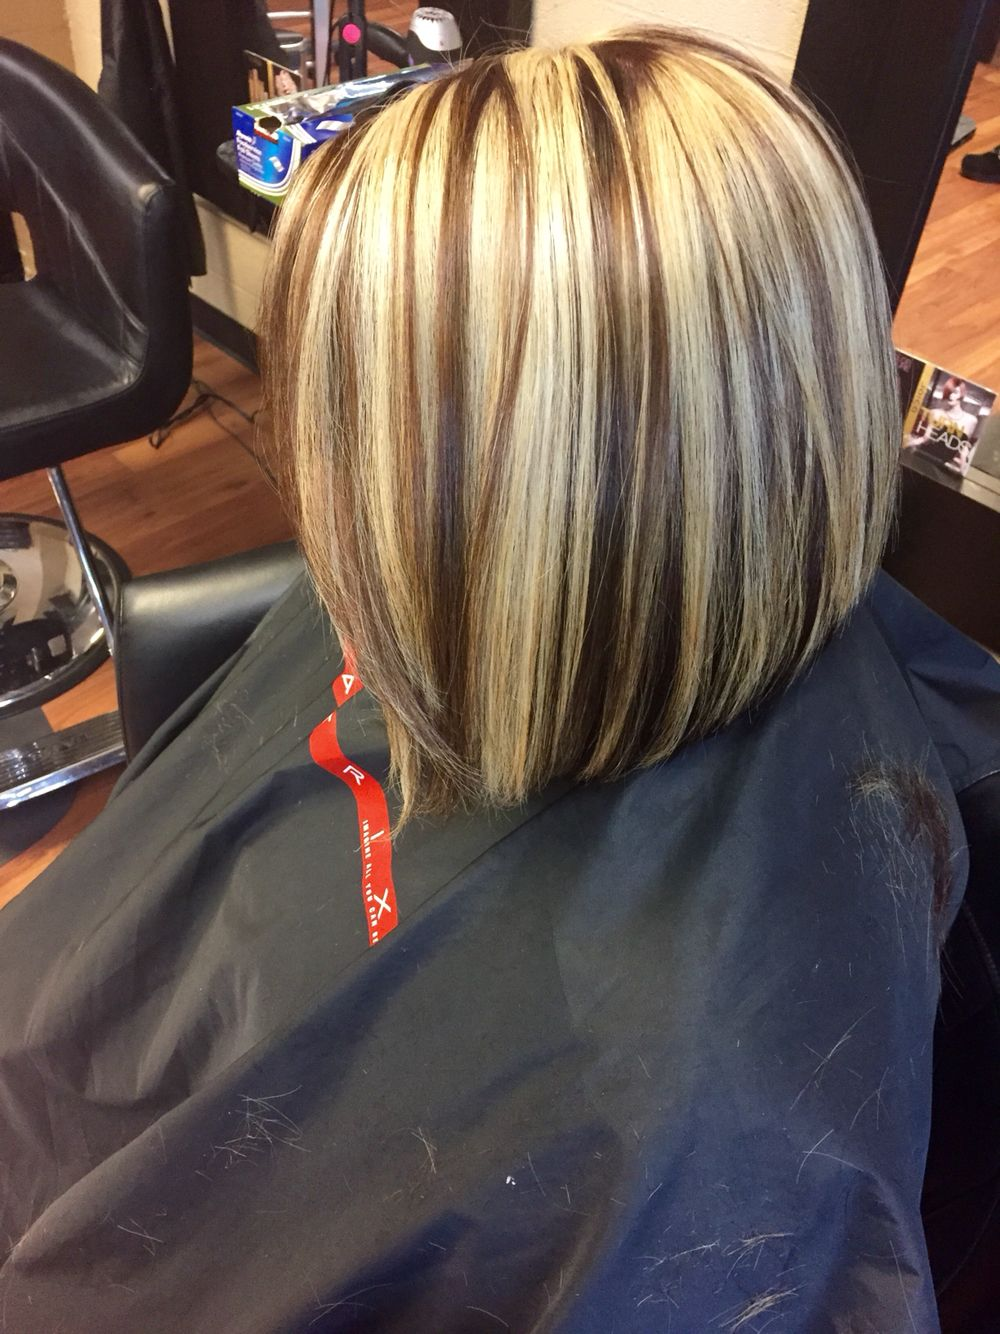 Chunky Blonde Highlight With A Mocha Brown Base And Short Hair Bob Short Hair Highlights Short Hair Styles Highlights Brown Hair Short